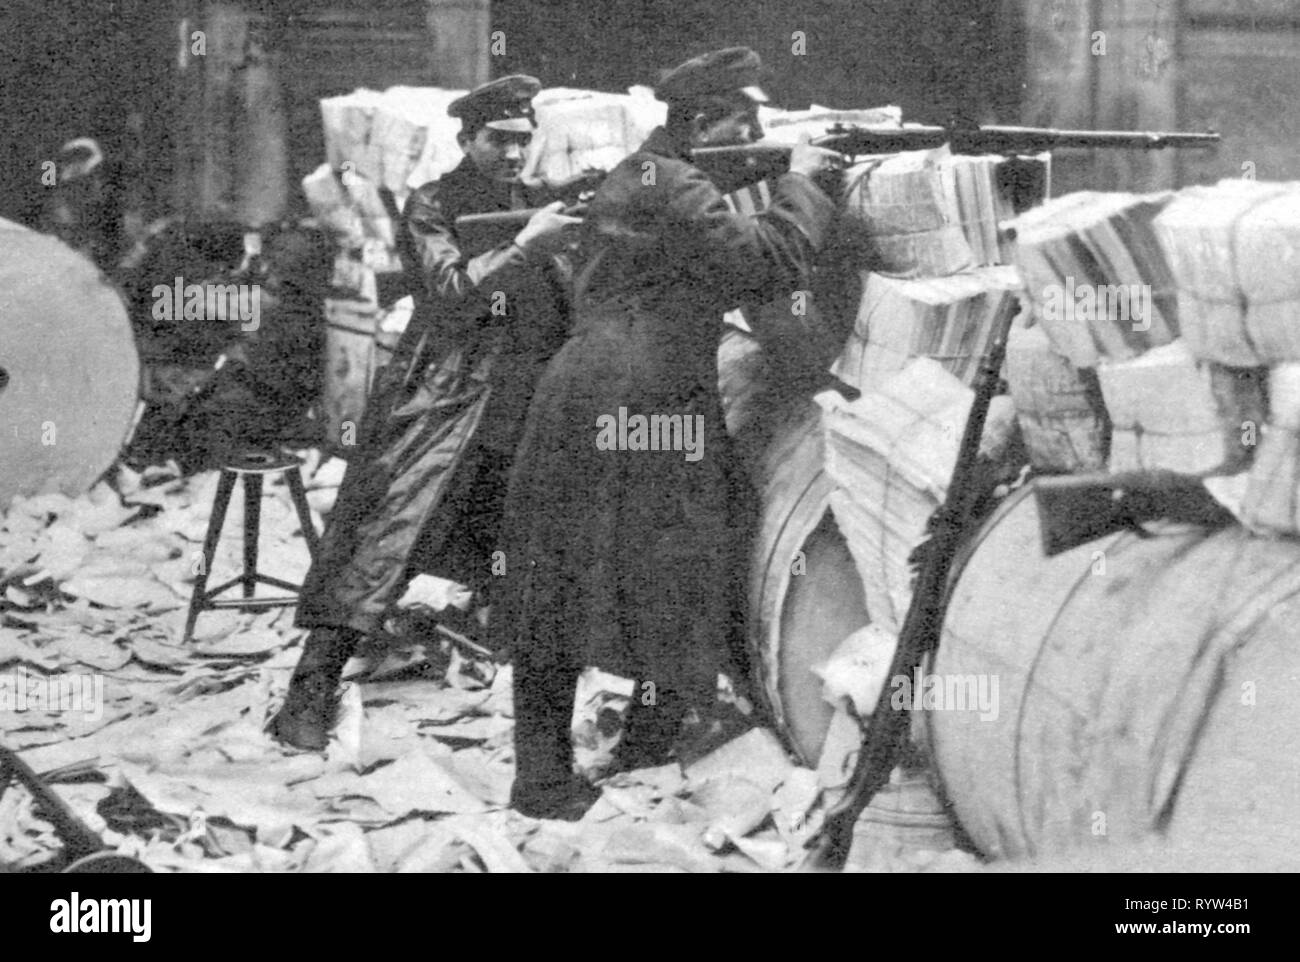 revolution-1918-1919-germany-berlin-spartacist-uprising-51-1211919-fight-for-the-newspaper-quarter-members-of-the-spartacist-league-in-position-behind-paper-rolls-and-newspapers-january-uprising-take-cover-rifle-in-attempt-newspaper-bundles-barricade-barricades-spartacus-spartacists-revolutionist-revolutionists-communist-communists-kpd-weapons-arms-weapon-arm-rifle-gun-rifles-guns-free-state-of-prussia-german-reich-republic-republics-1910s-10s-20th-century-people-men-man-male-revolution-revolutions-additional-rights-clearance-info-not-available-RYW4B1.jpg